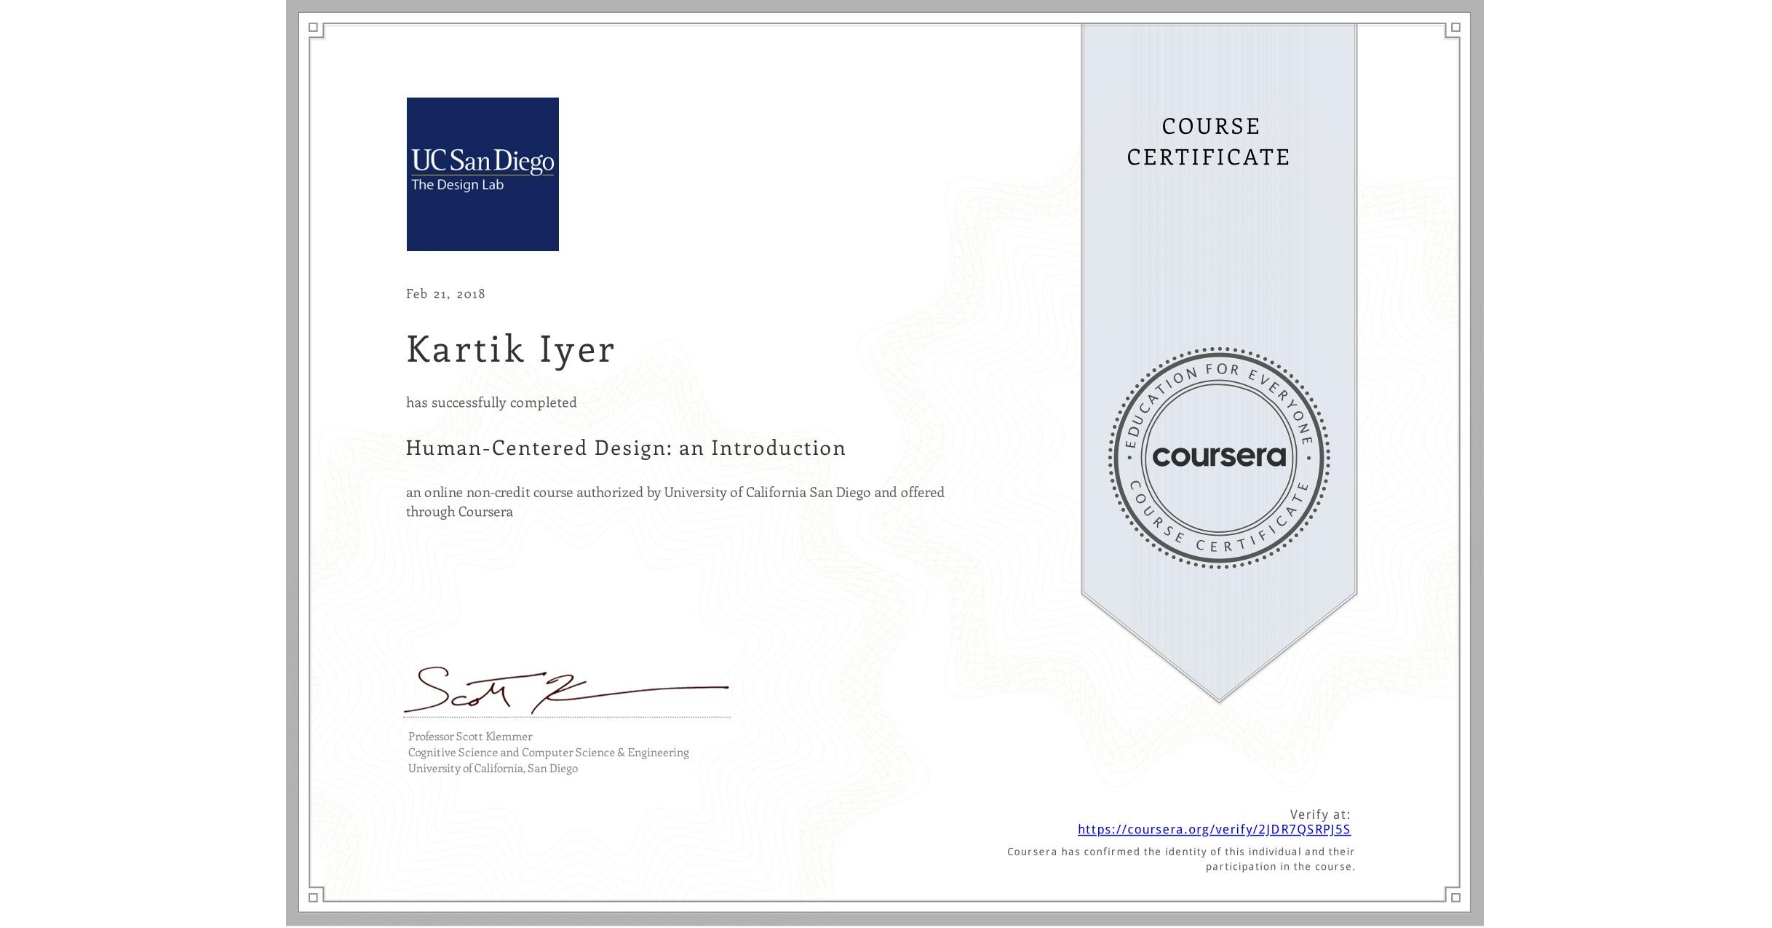 View certificate for Kartik Iyer, Human-Centered Design: an Introduction, an online non-credit course authorized by University of California San Diego and offered through Coursera